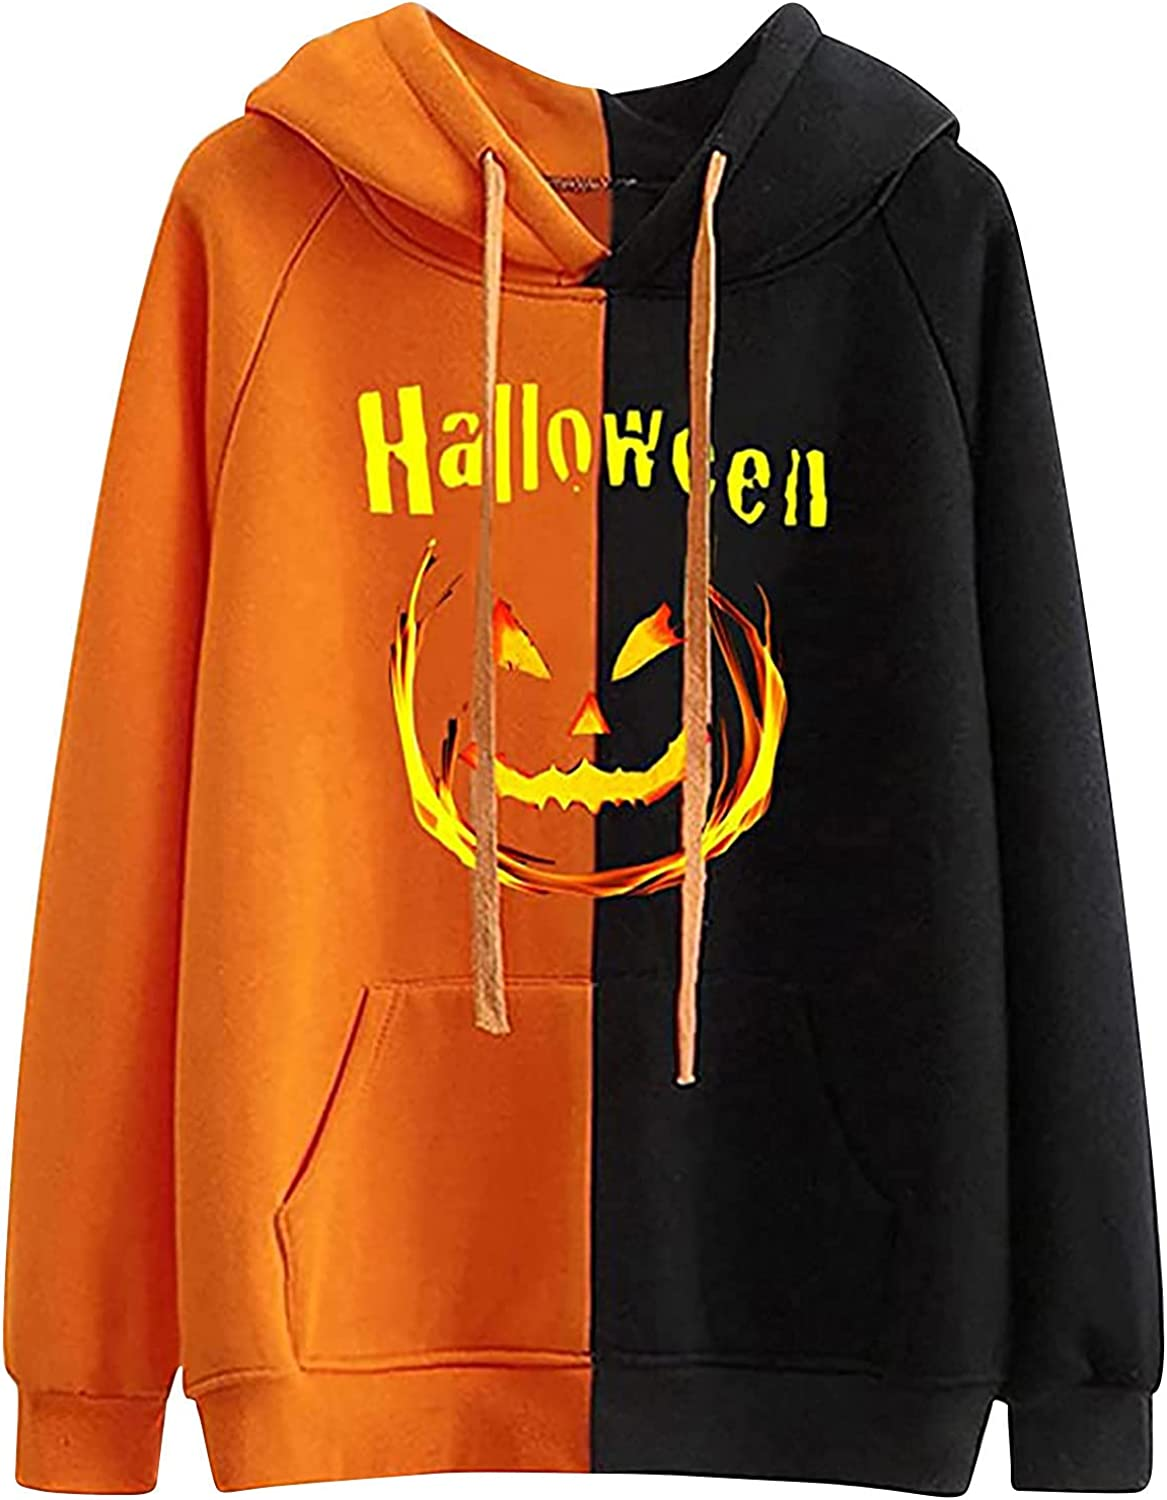 BOXIACEY Women's Halloween Hoodies Pullover Fashion Color Matching Blouse Casual Long Sleeve Drawstring Sweatshirts